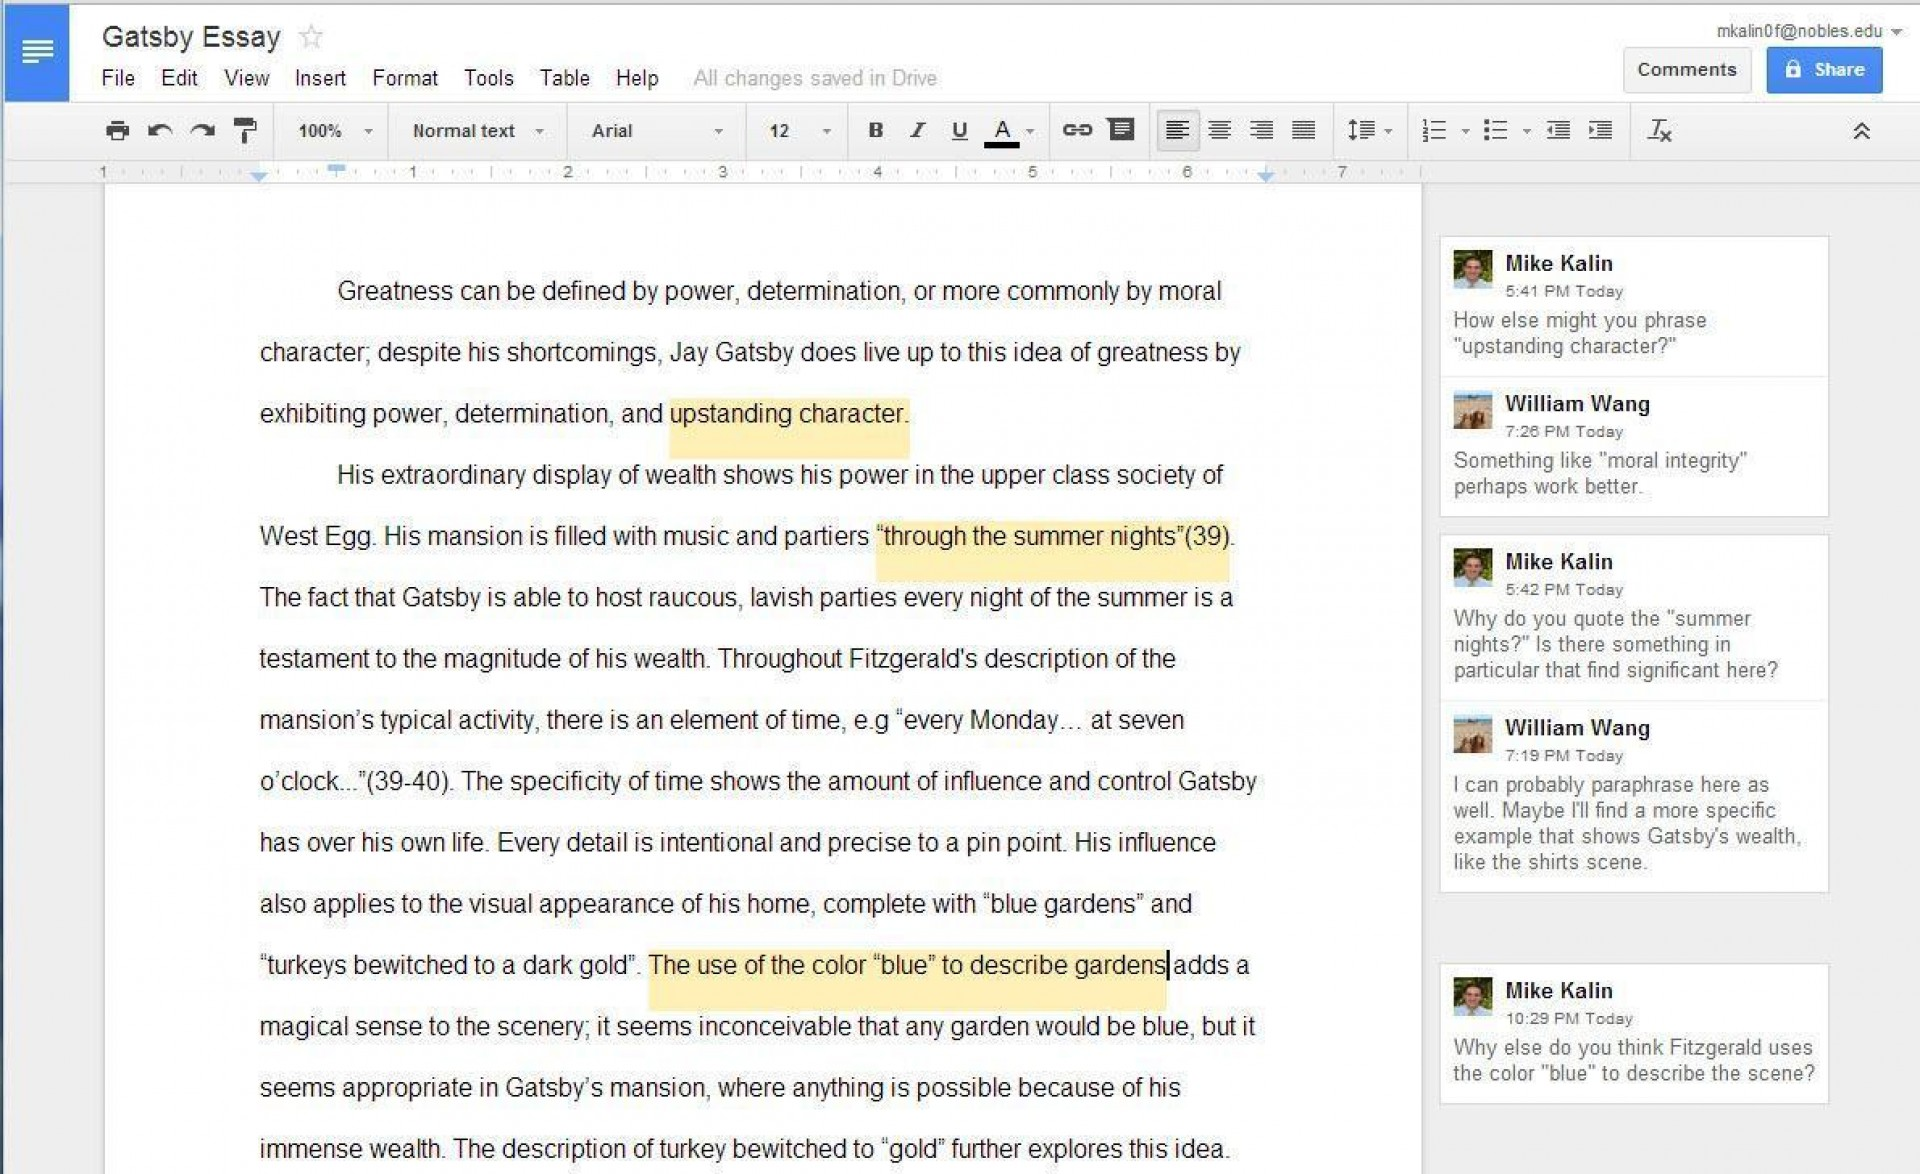 004 Essay Example Google Outstanding Corrector Search Engine 1920